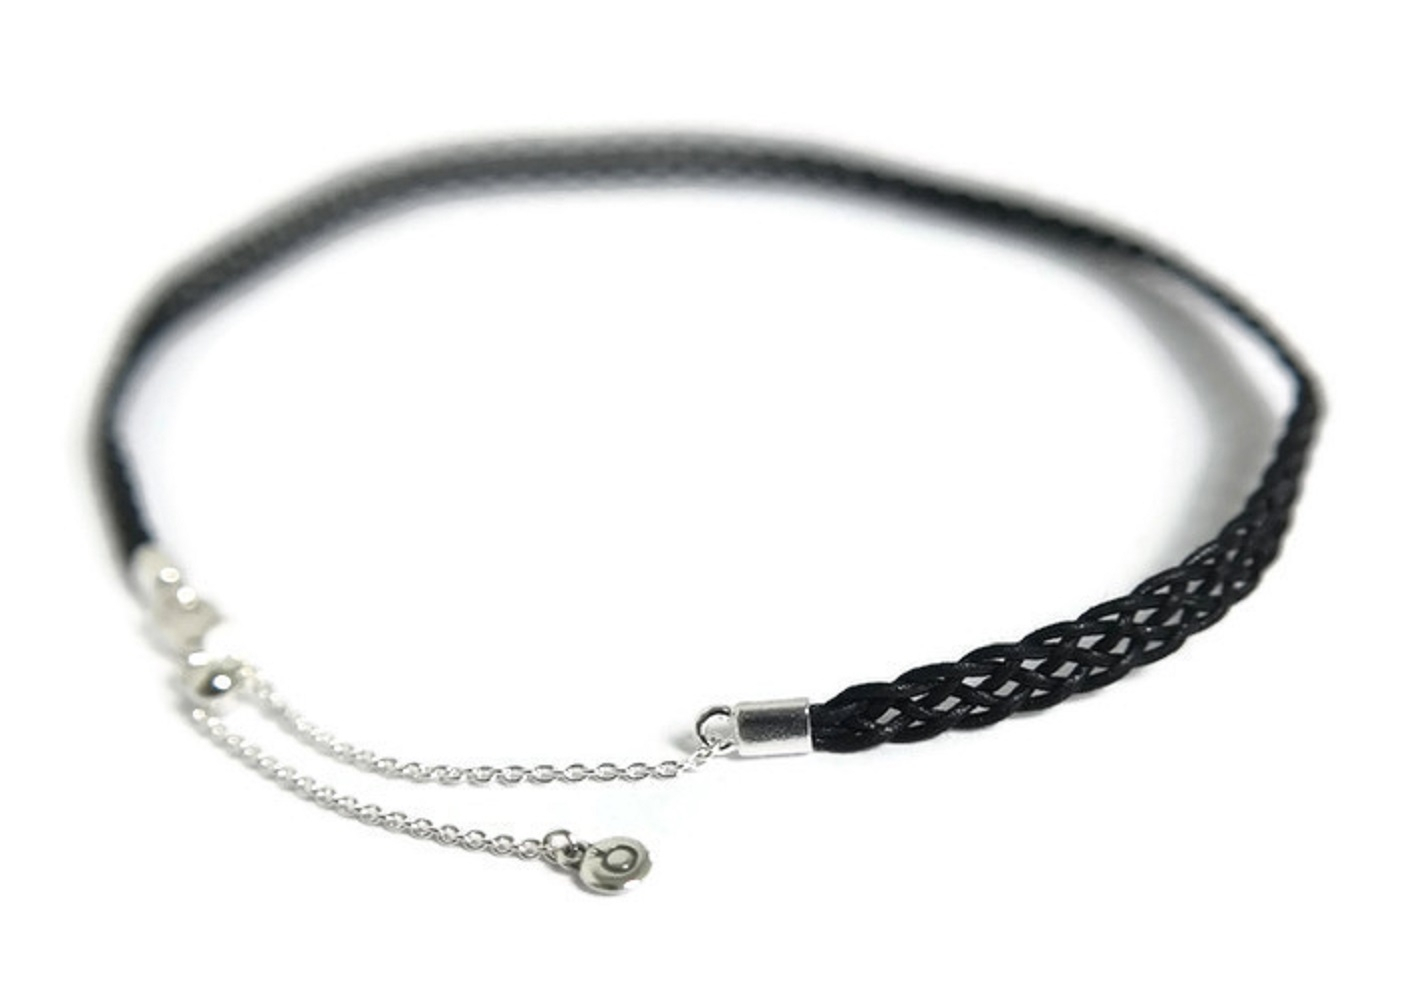 Authentic Woven Fabric Choker, Black 590543Cbk 32, 12.6 In (Adjustable) Intended For Recent Woven Fabric Choker Slider Necklaces (Gallery 23 of 25)